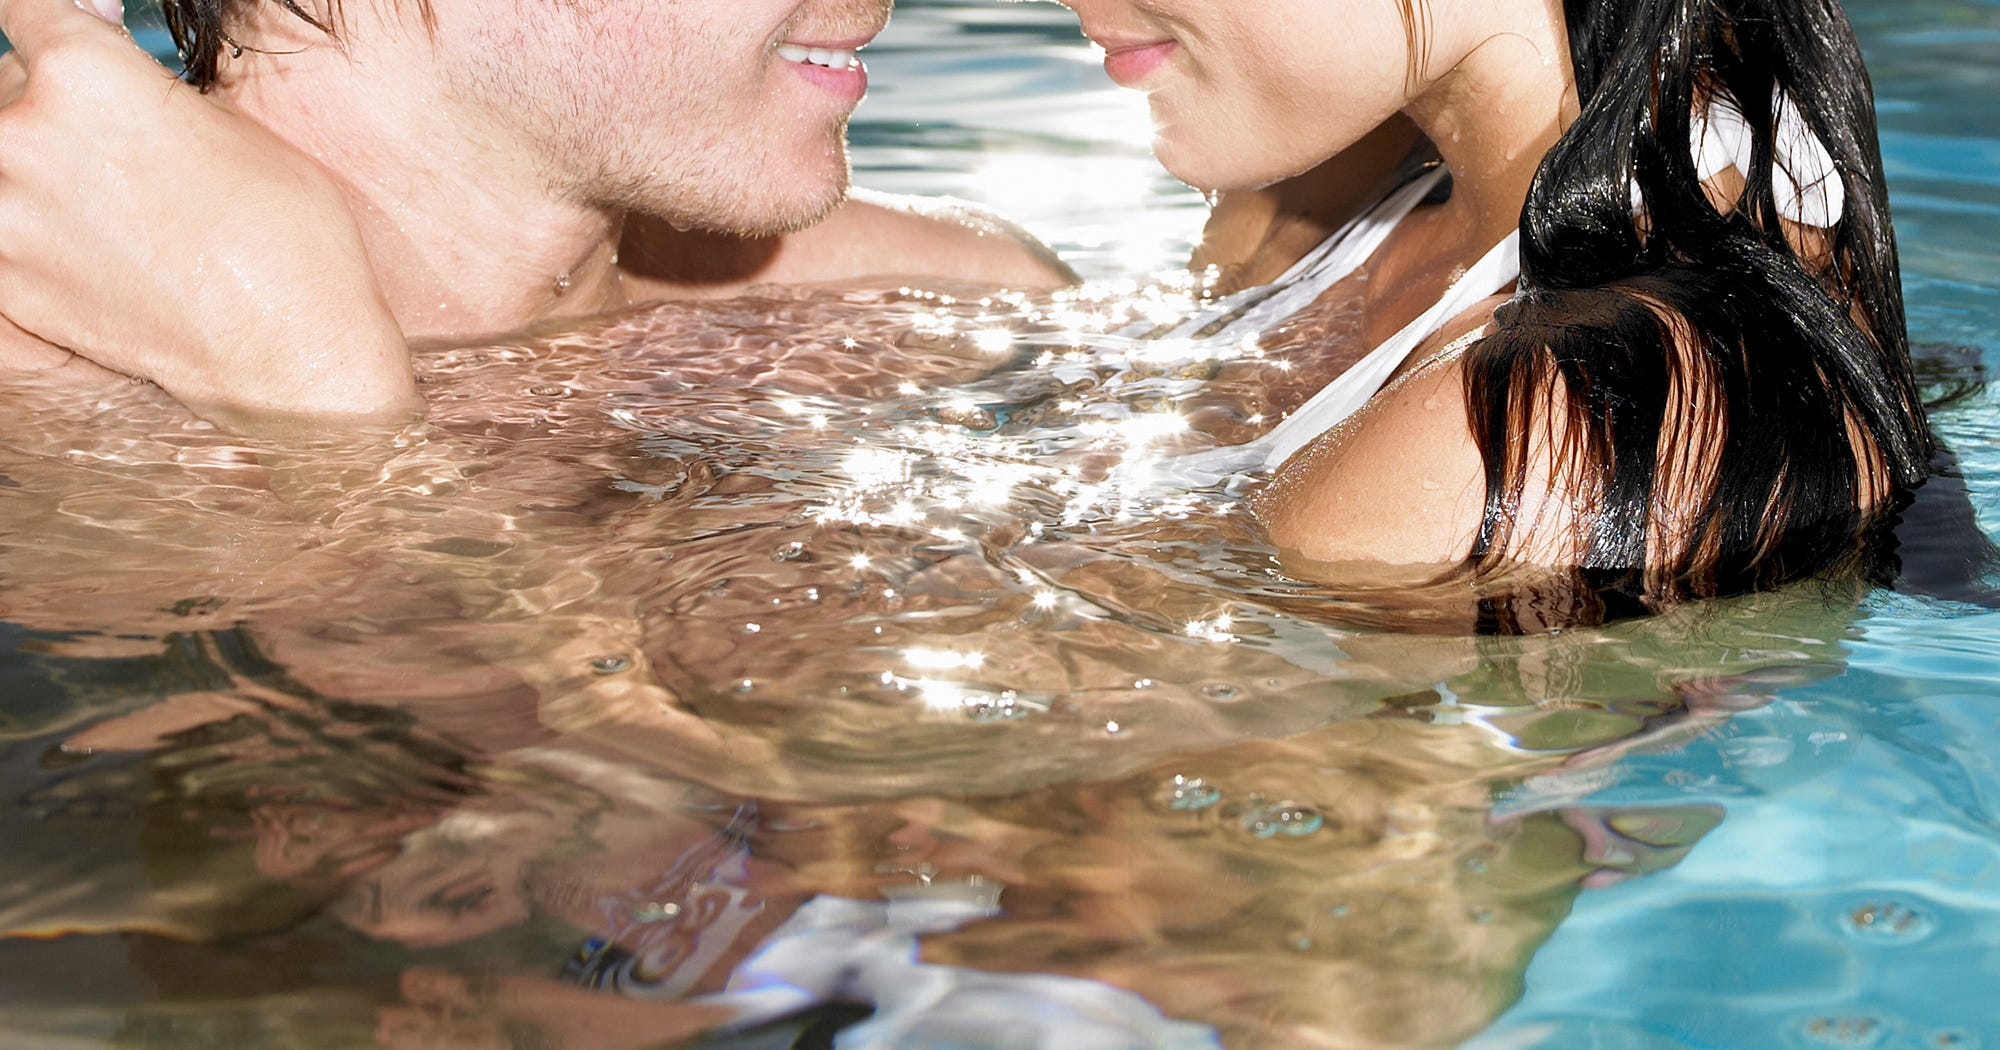 8 Underwater Sex Tips You Should Know Before You, Um, Dive In